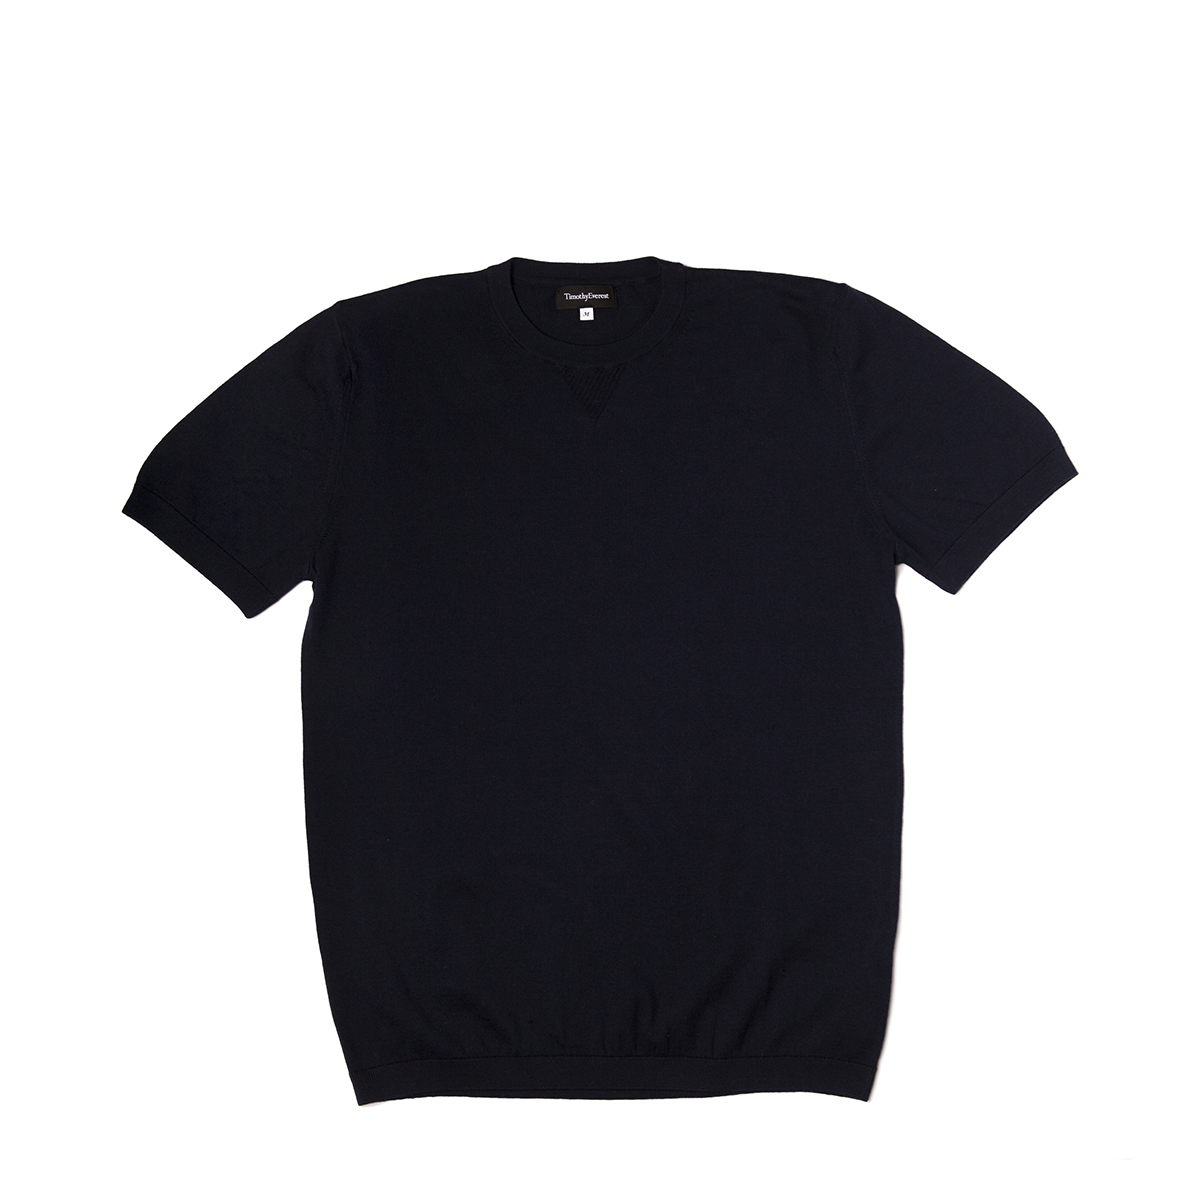 Timothy Everest Navy Lightweight Cotton/Cashmere Knitted Tee